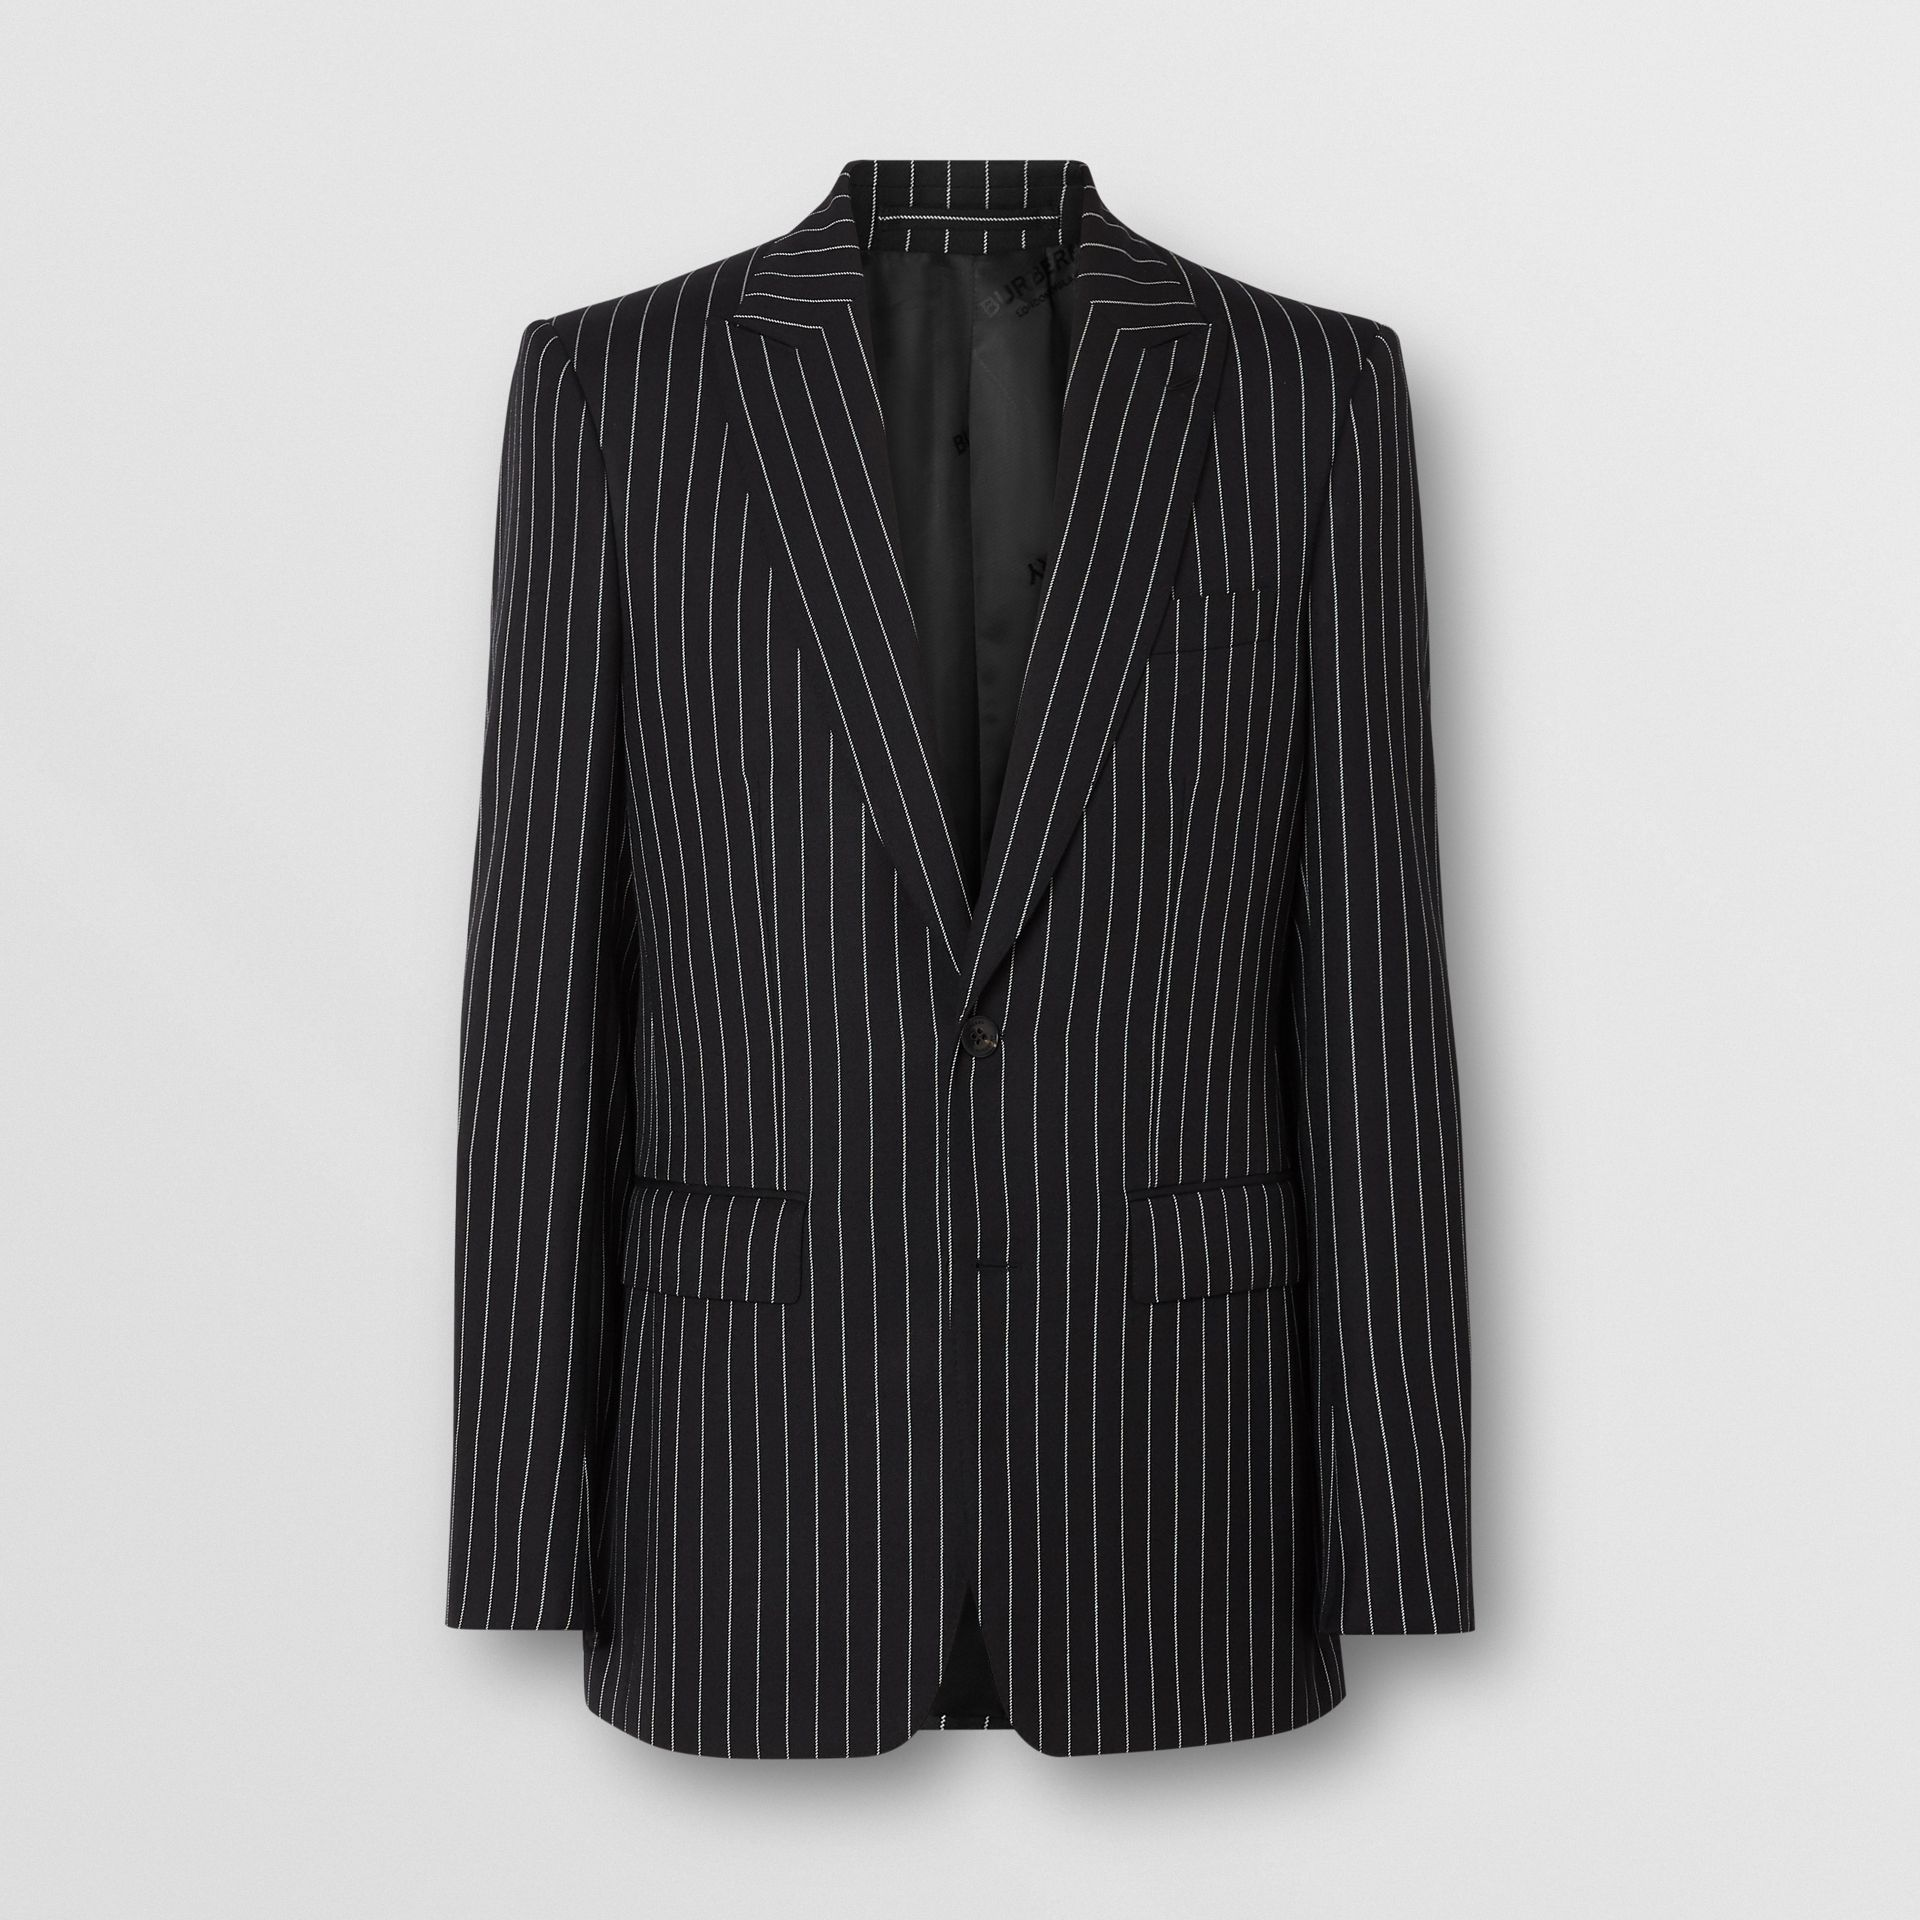 English Fit Pinstriped Wool Suit in Black - Men | Burberry - gallery image 3